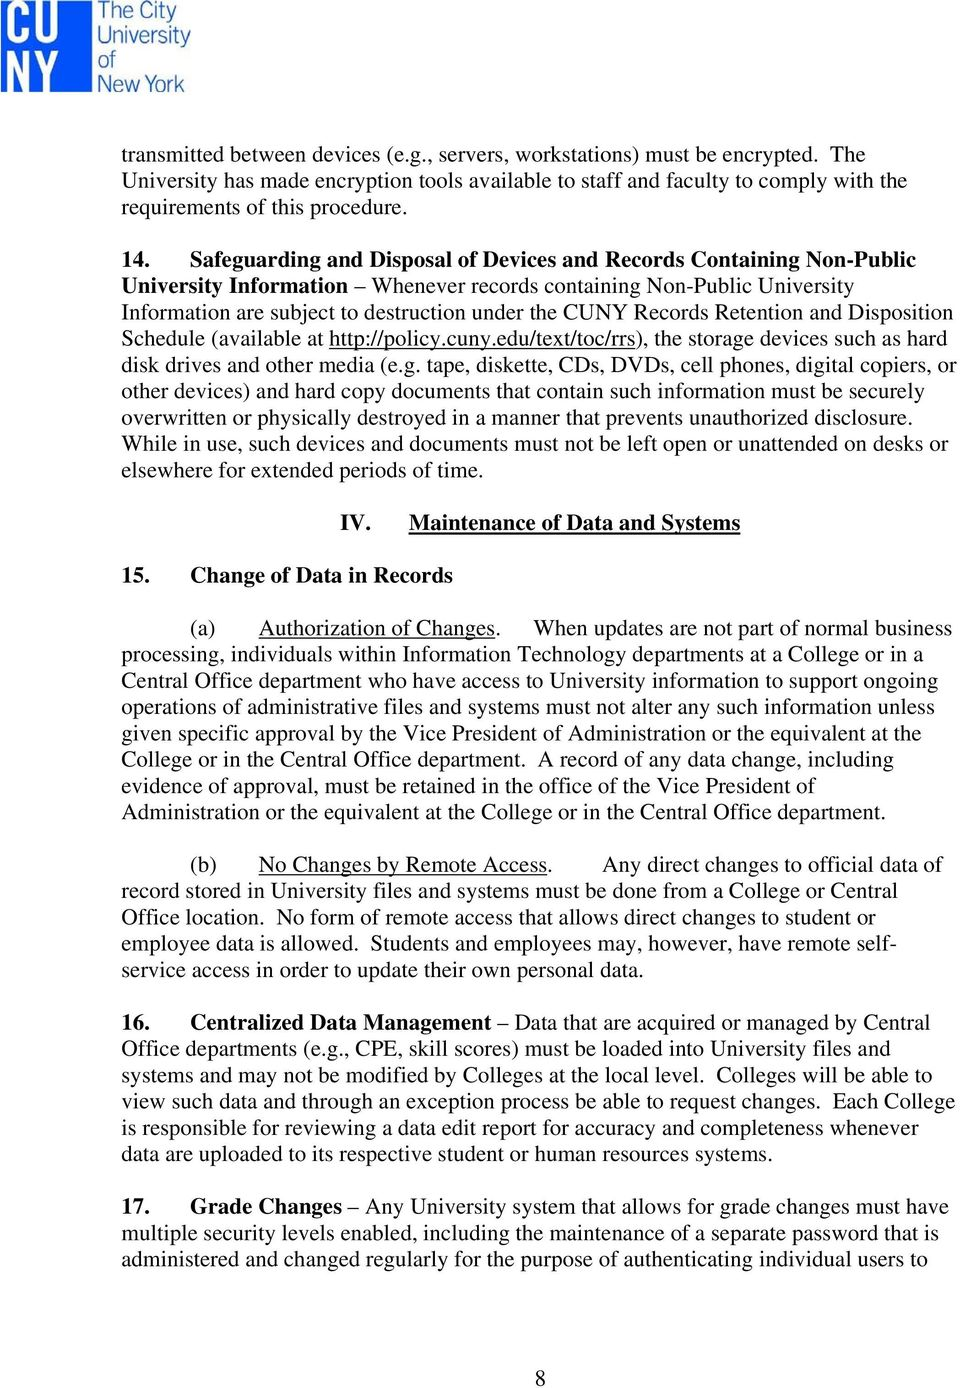 CUNY Records Retention and Disposition Schedule (available at http://policy.cuny.edu/text/toc/rrs), the storage